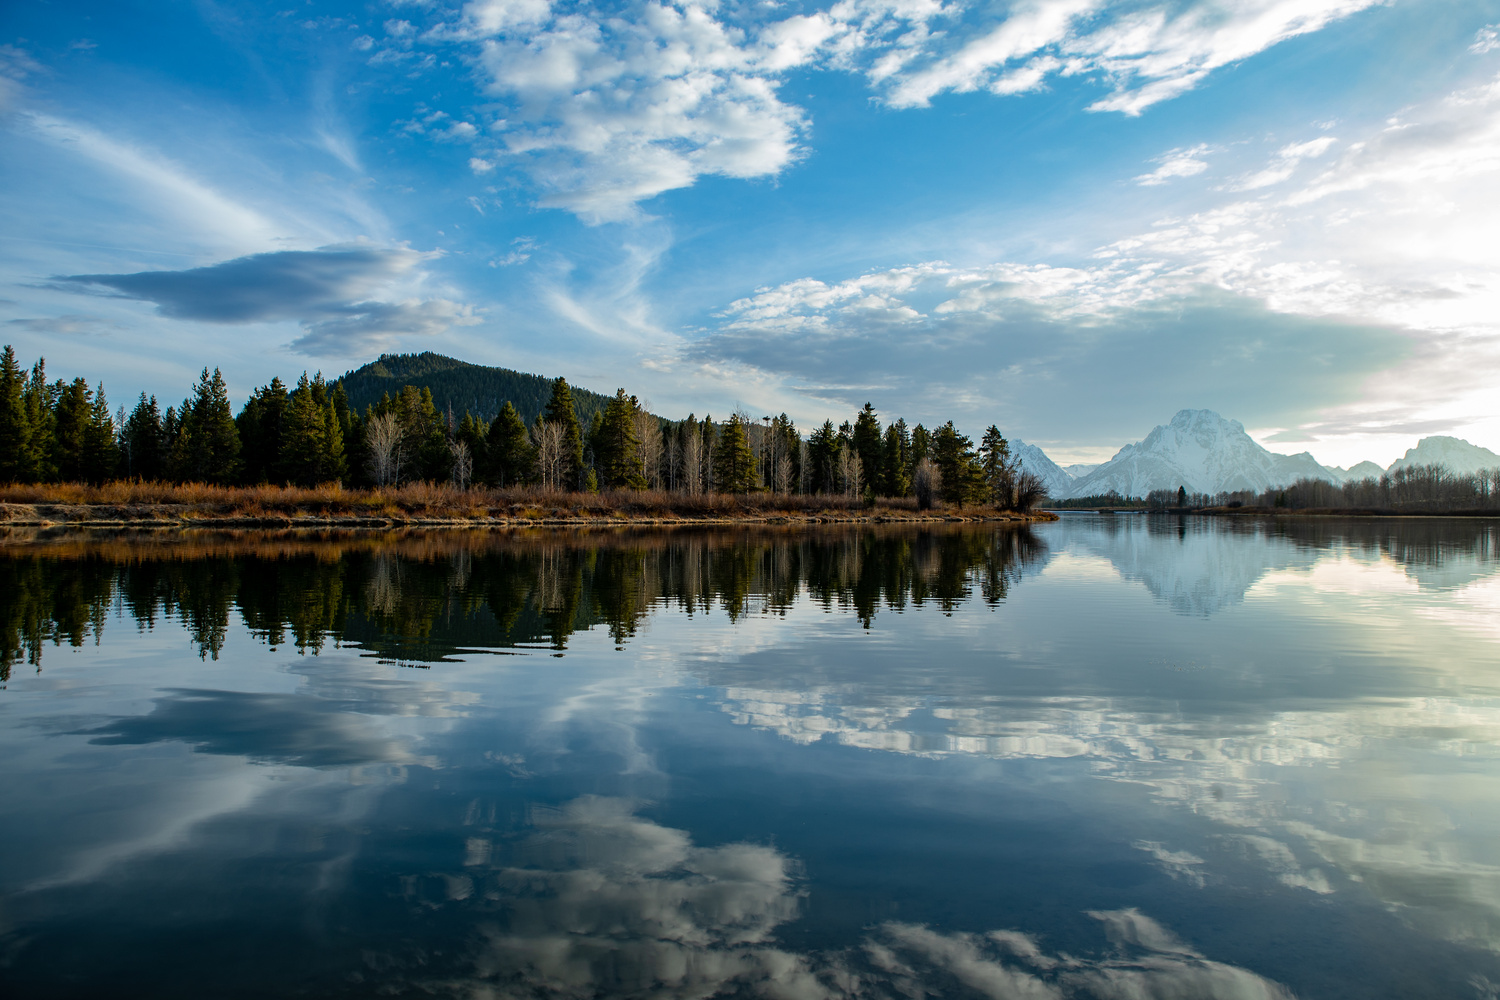 Oxbow Reflections by Ashleigh Magill